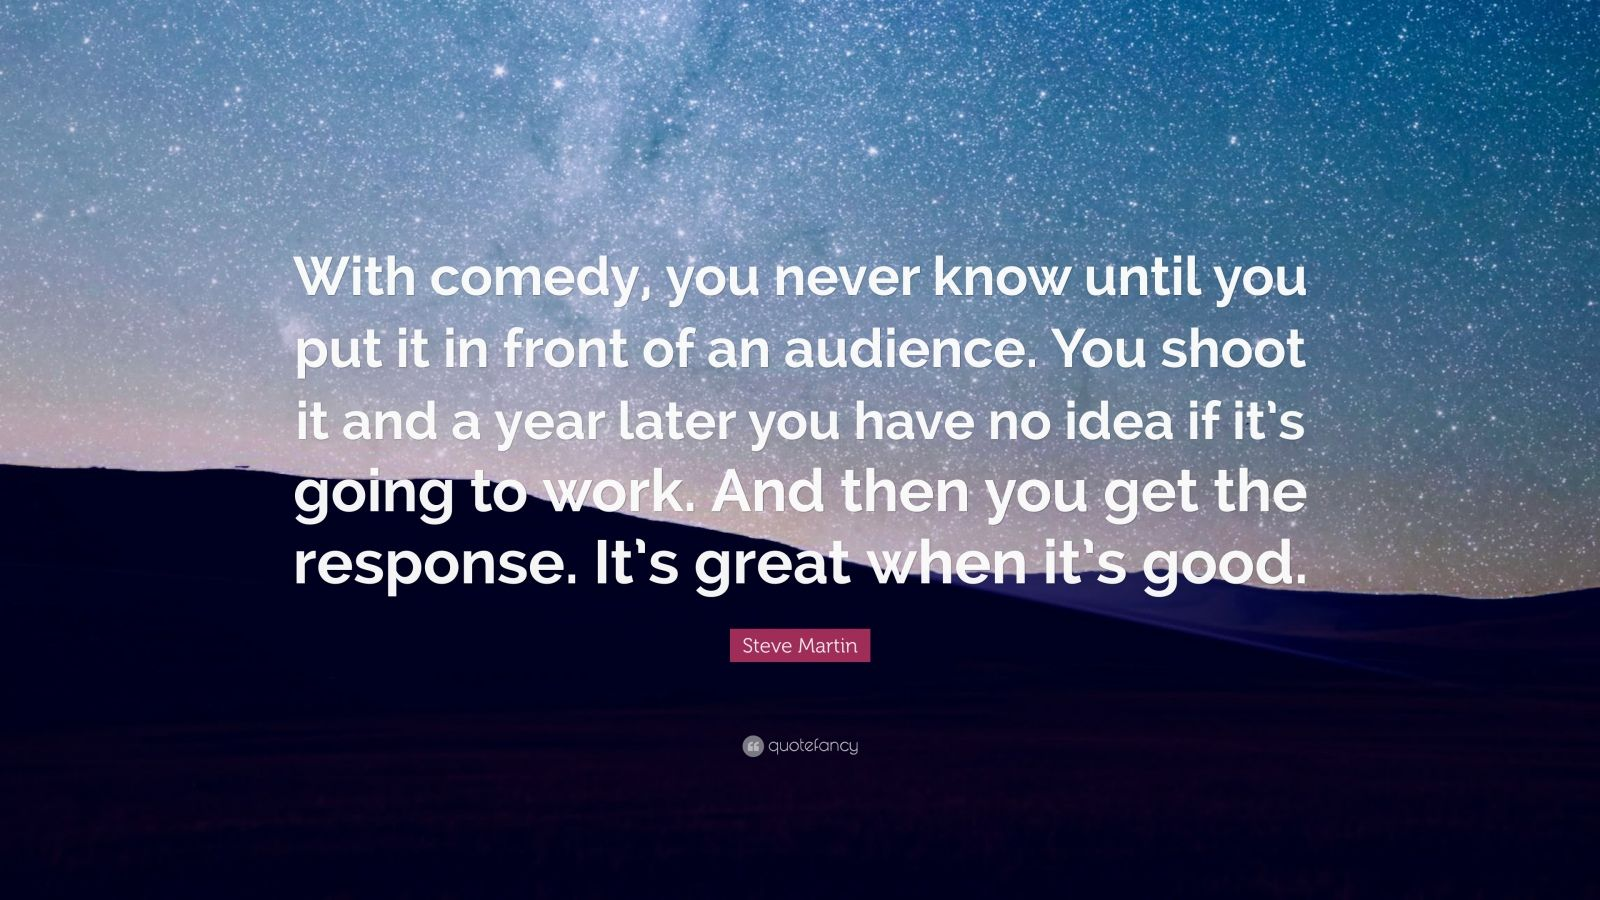 """Steve Martin Quote: """"With comedy, you never know until you put it in front of an audience. You shoot it and a year later you have no idea if it's going to work. And then you get the response. It's great when it's good."""""""